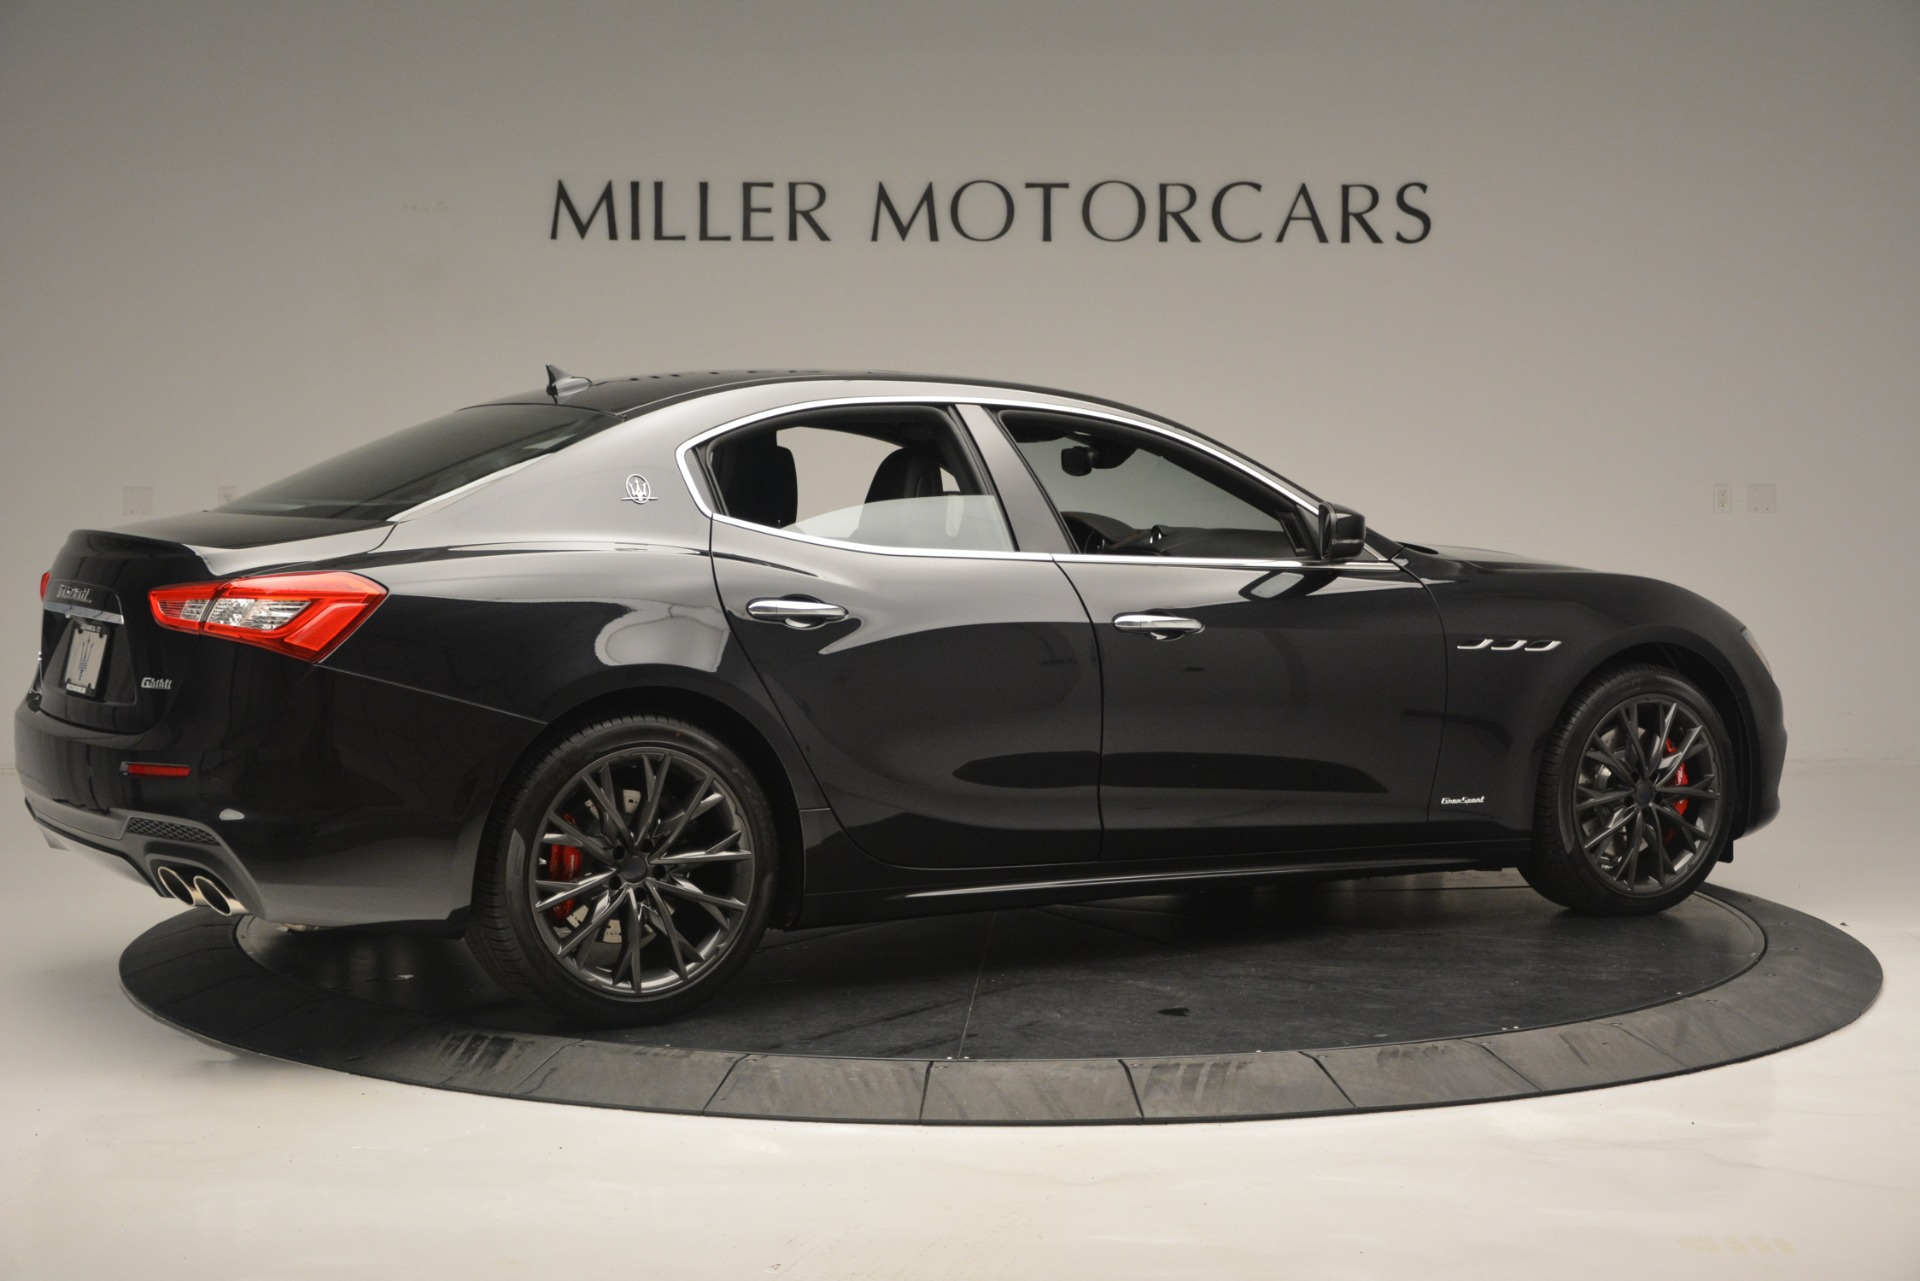 New 2019 Maserati Ghibli S Q4 GranSport For Sale In Westport, CT 2765_p8